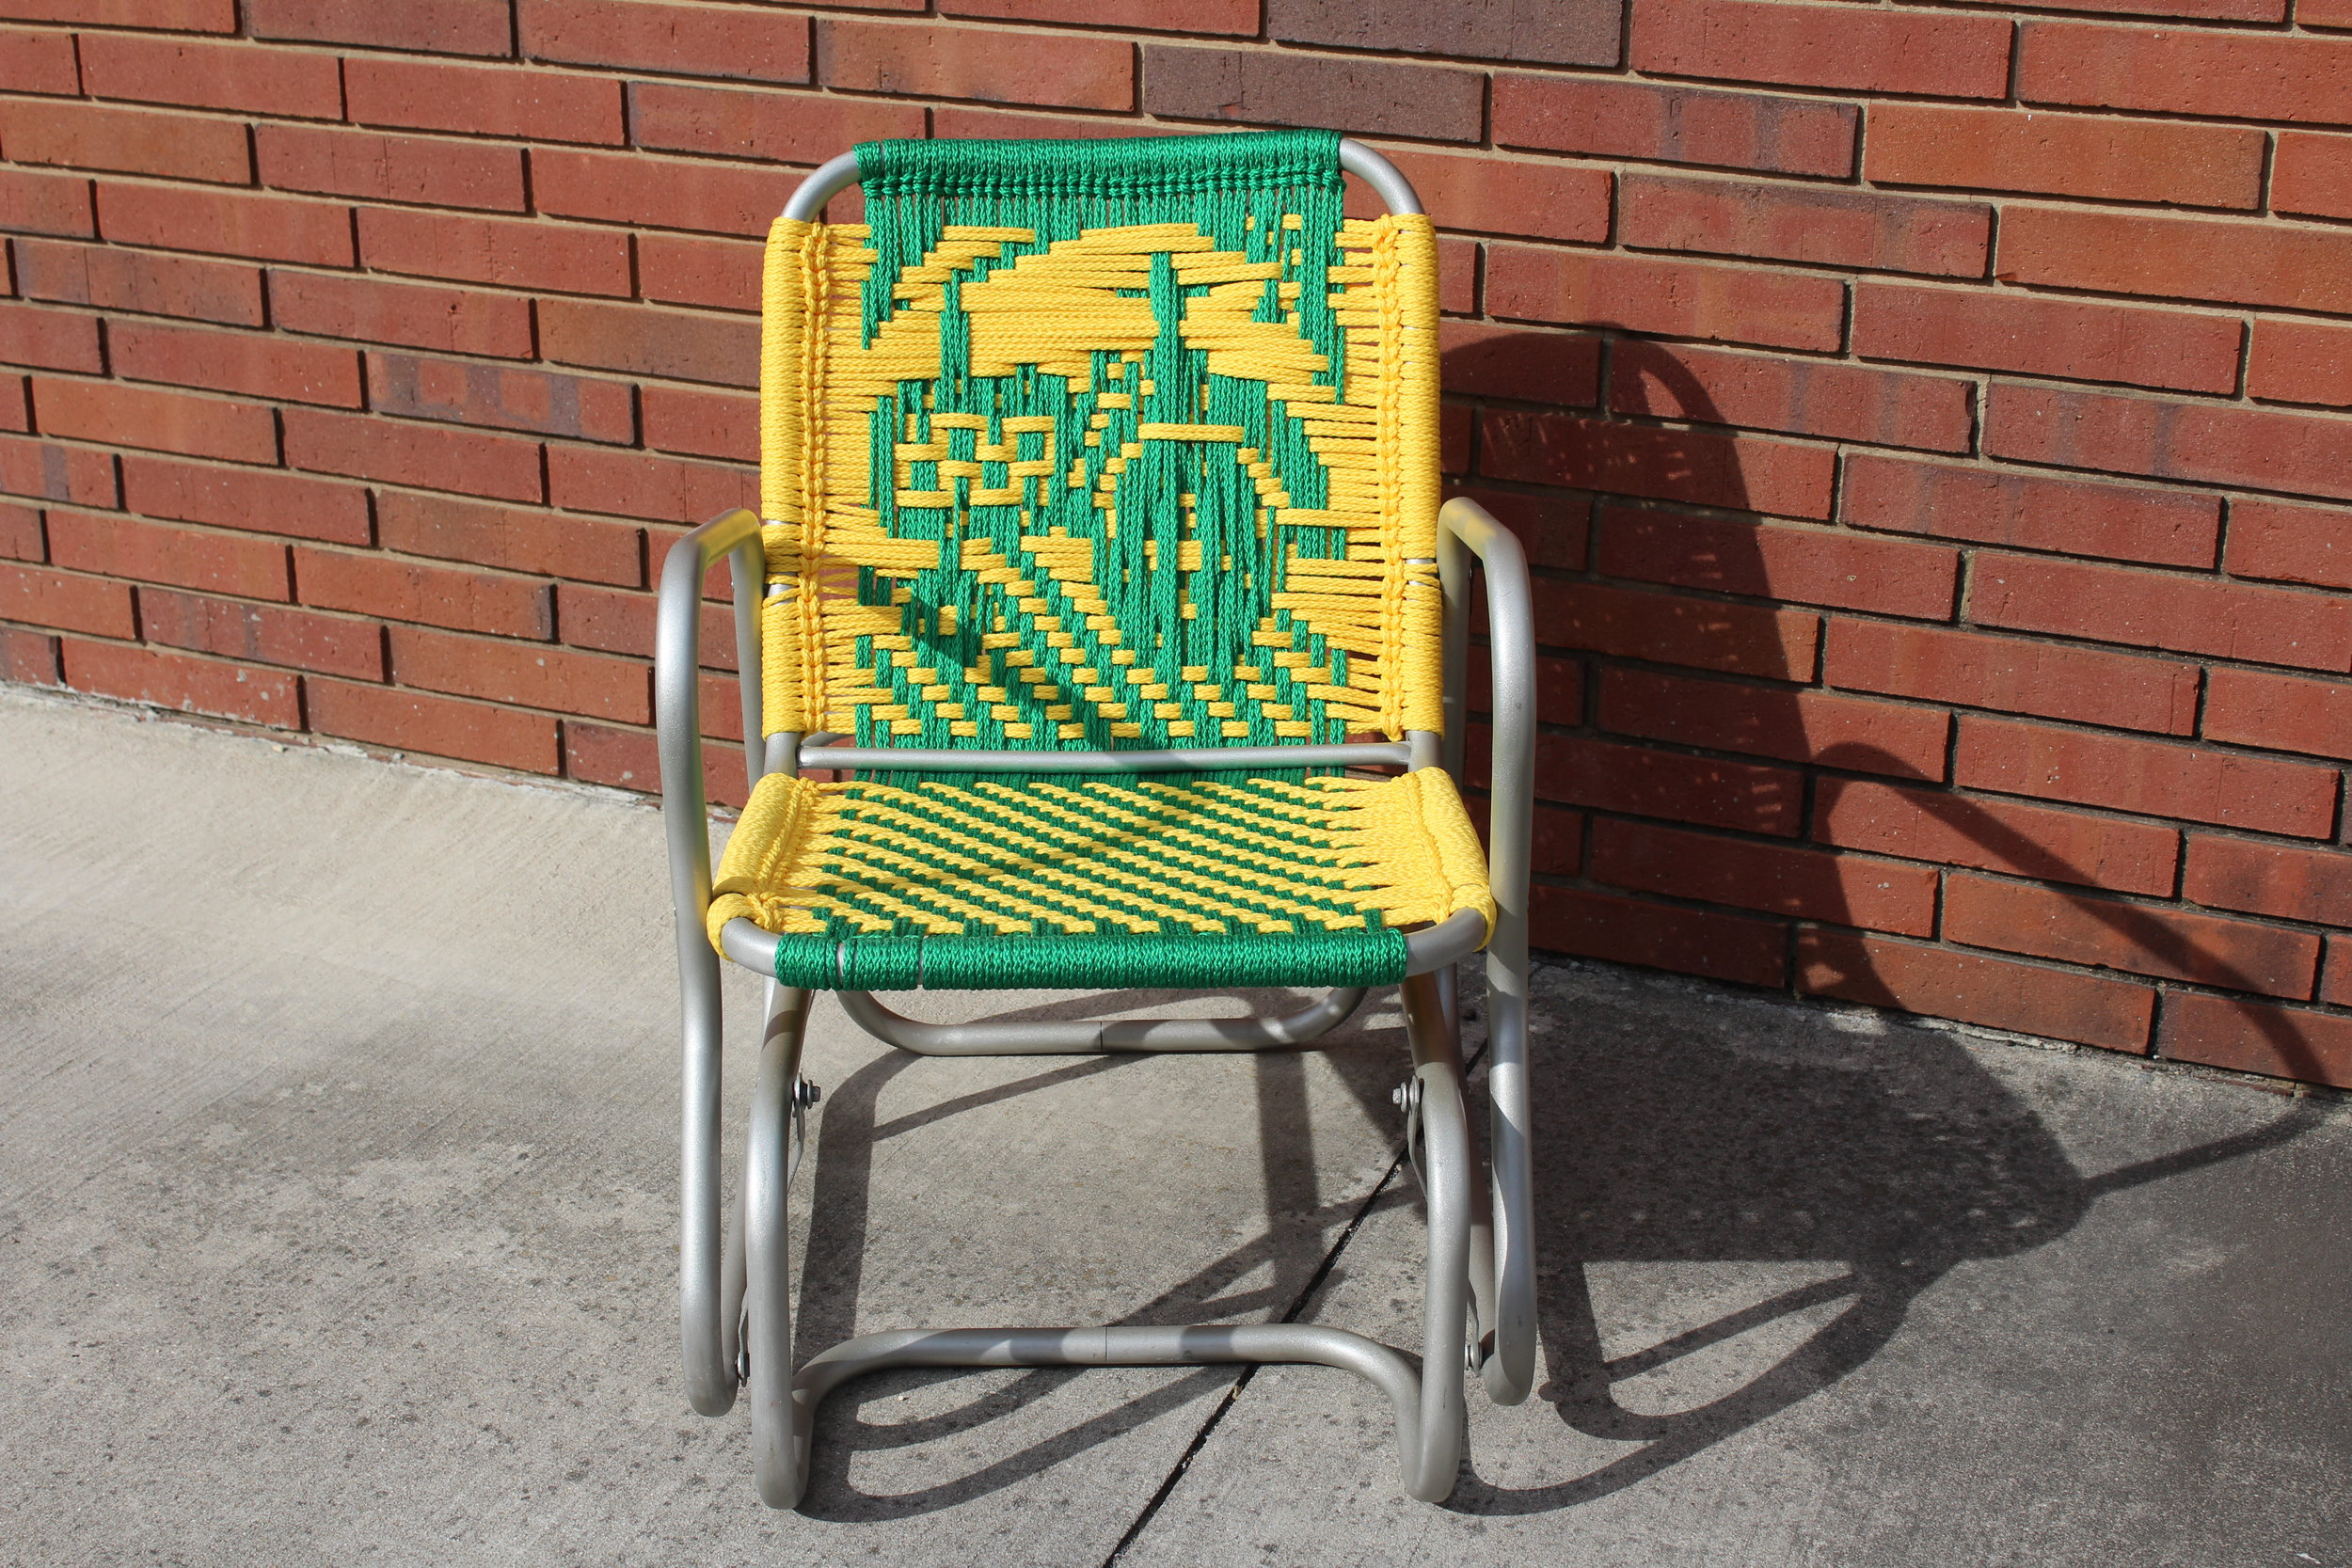 Vintage Aluminum Glider — Tractor Pattern; Sunshine and Kelly Green Cord